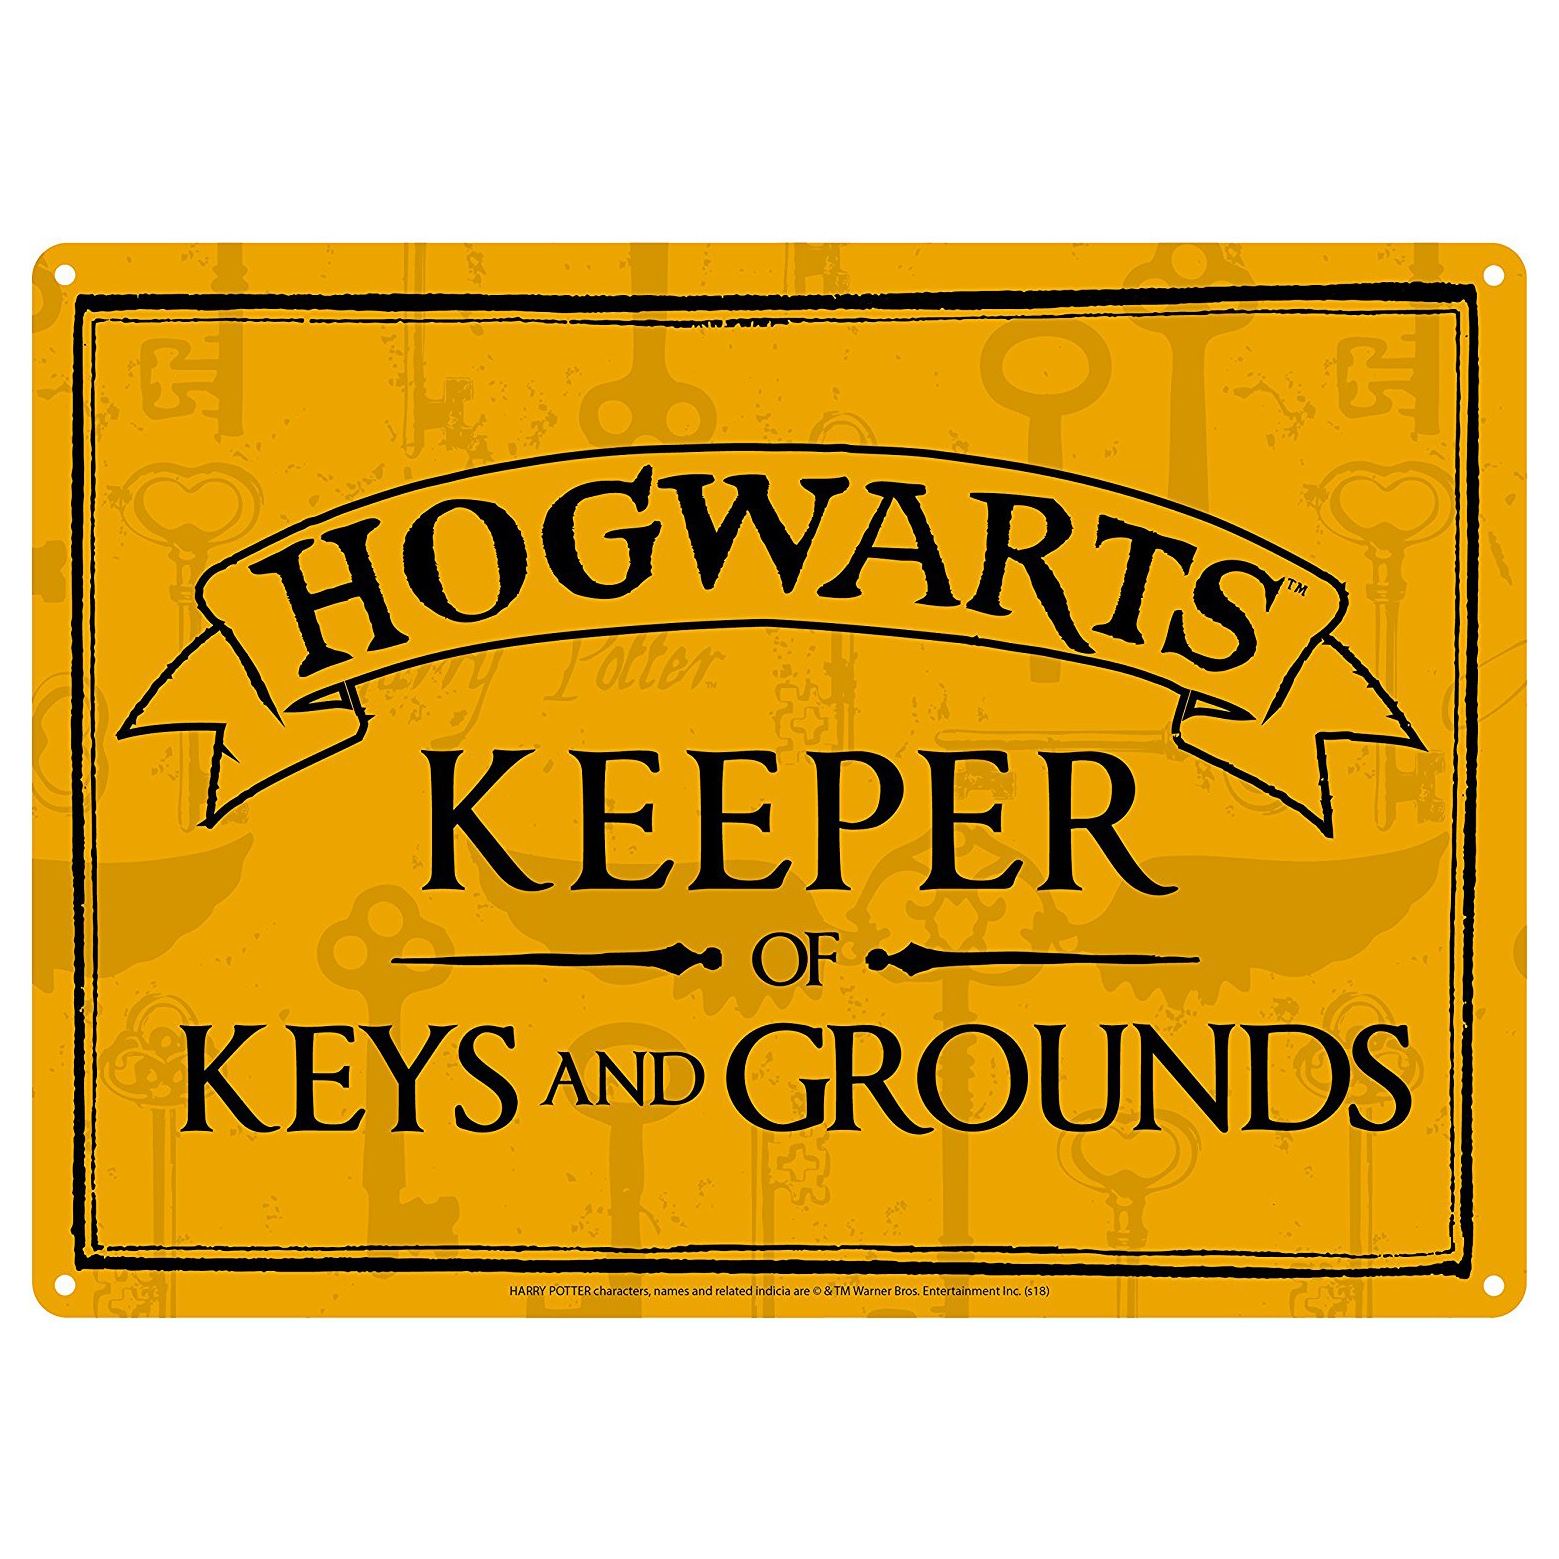 Harry Potter Hogwarts Keeper of Keys & Grounds A5 Steel Sign